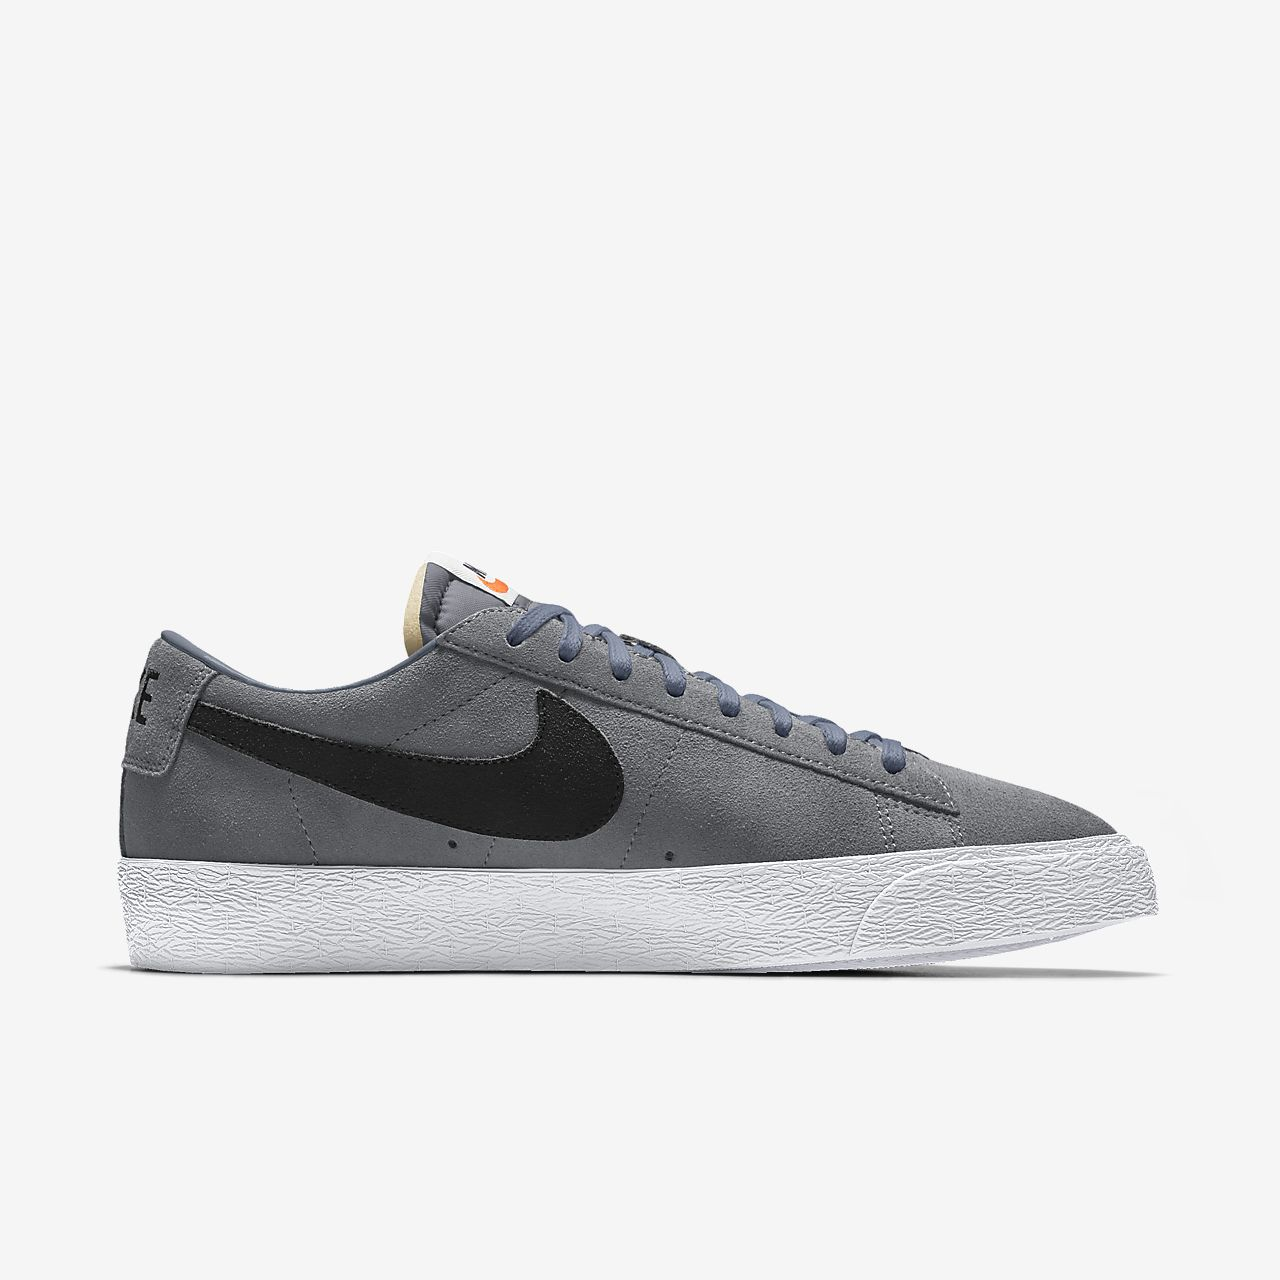 Chaussure personnalisable Nike Blazer Low By You.